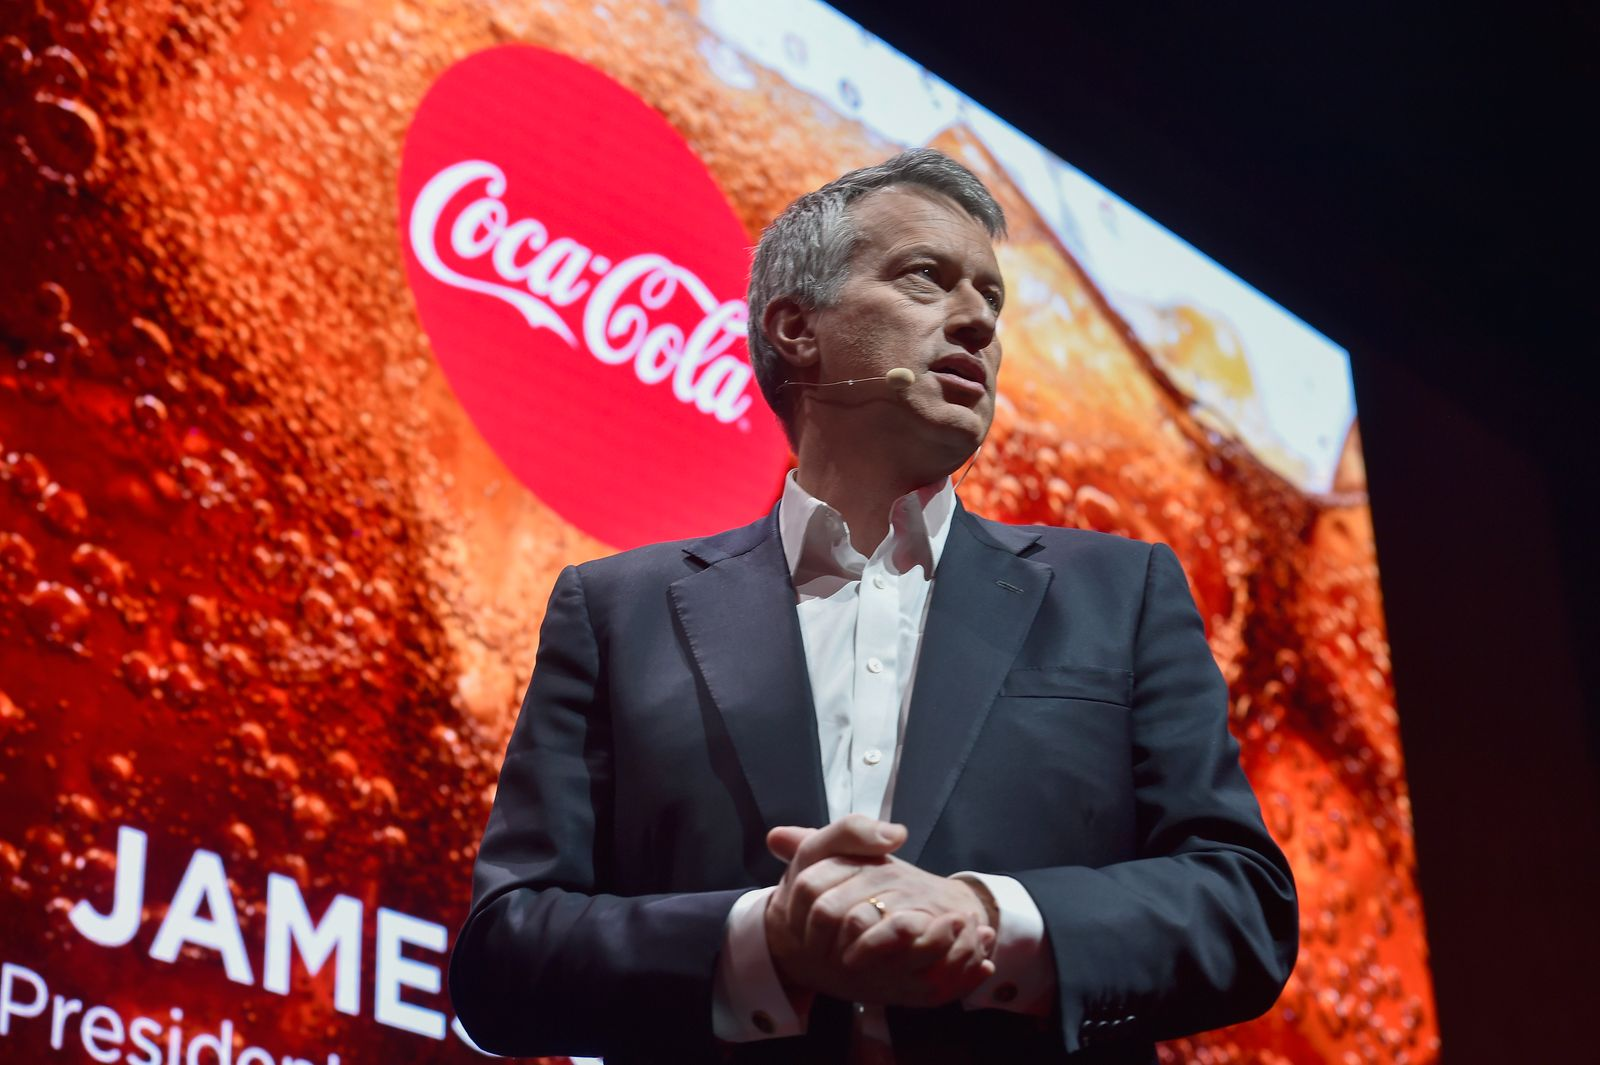 Coca-Cola Launch of 'One Brand' Strategy & 'Taste The Feeling' Creative Campaign - Media Event